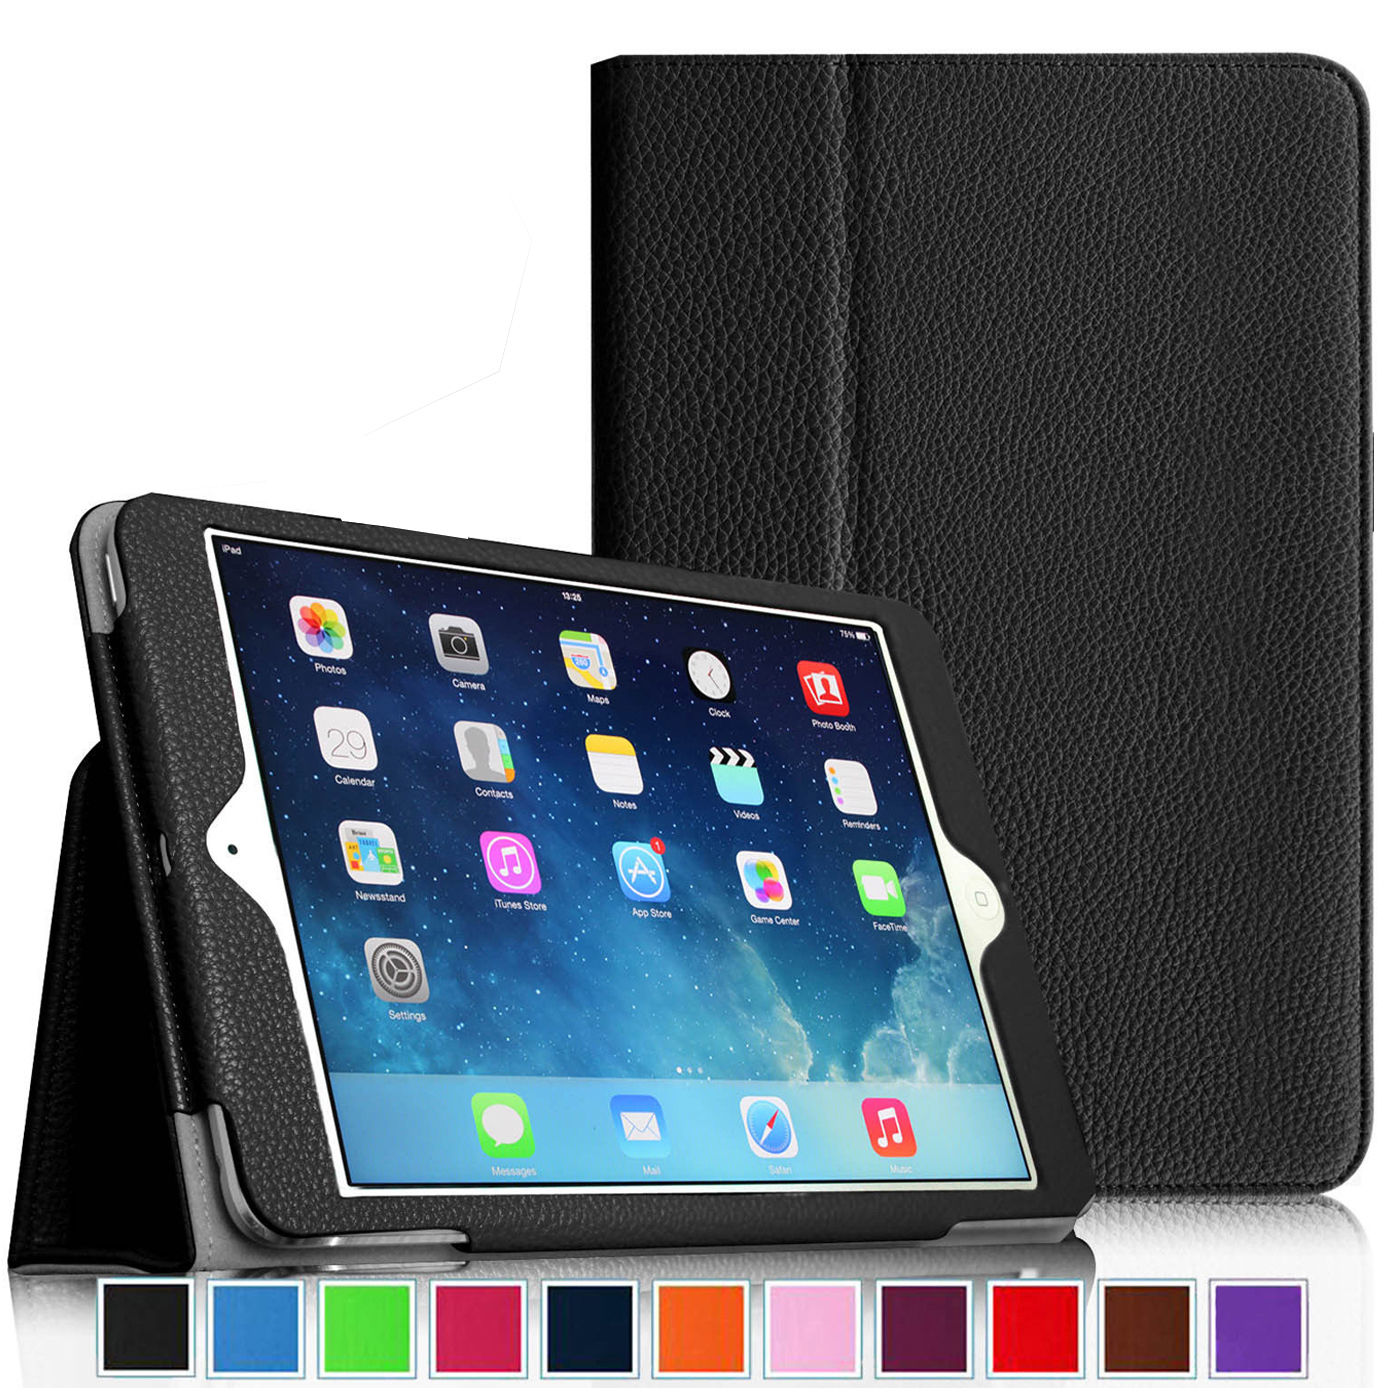 Flip PU Leather Case For Apple New iPad 9.7 2017 Magnetic Auto Wake Up Sleep Cover For ipad 2017 A1822 tablet funda capa case